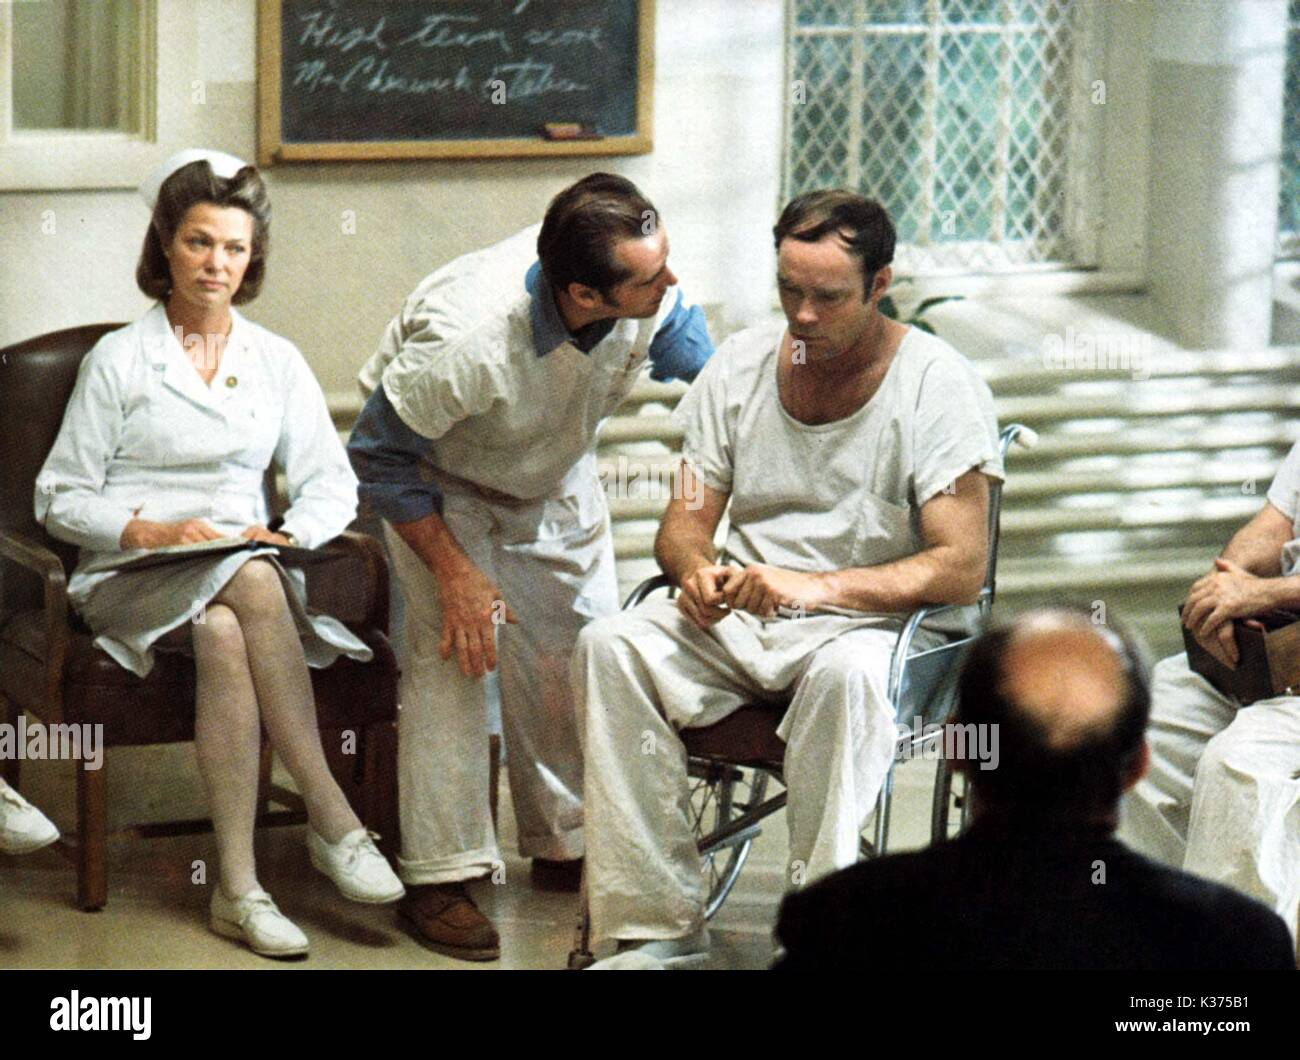 ONE FLEW OVER THE CUCKOO'S NEST [US 1975] Louise Fletcher, Jack Nicholson and ?     Date: 1975 - Stock Image